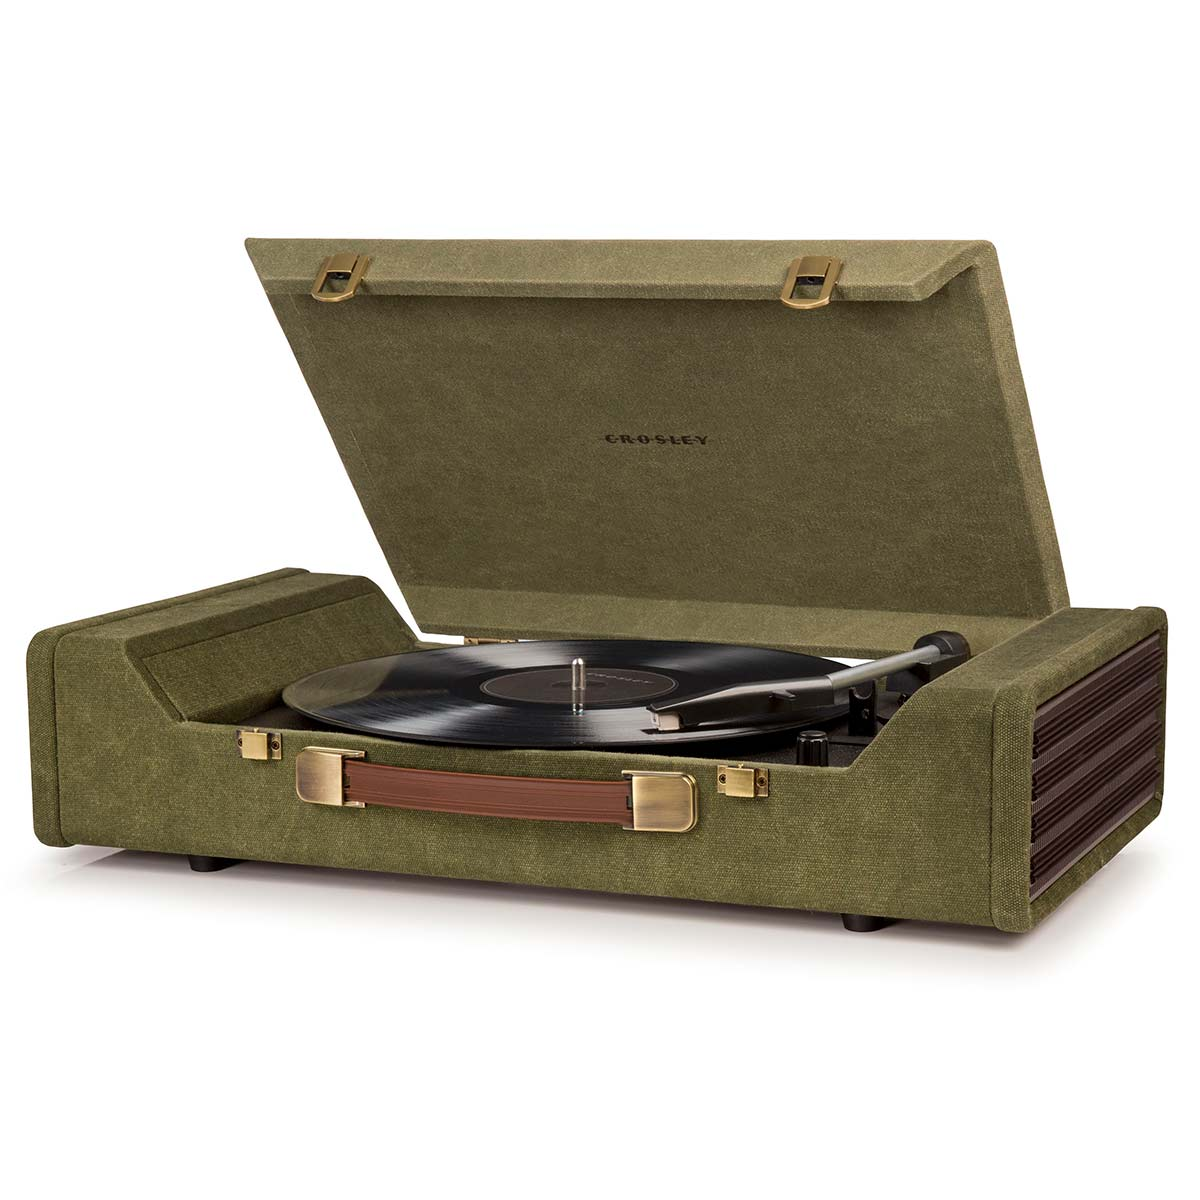 Crosely Nomad Portable Record Player